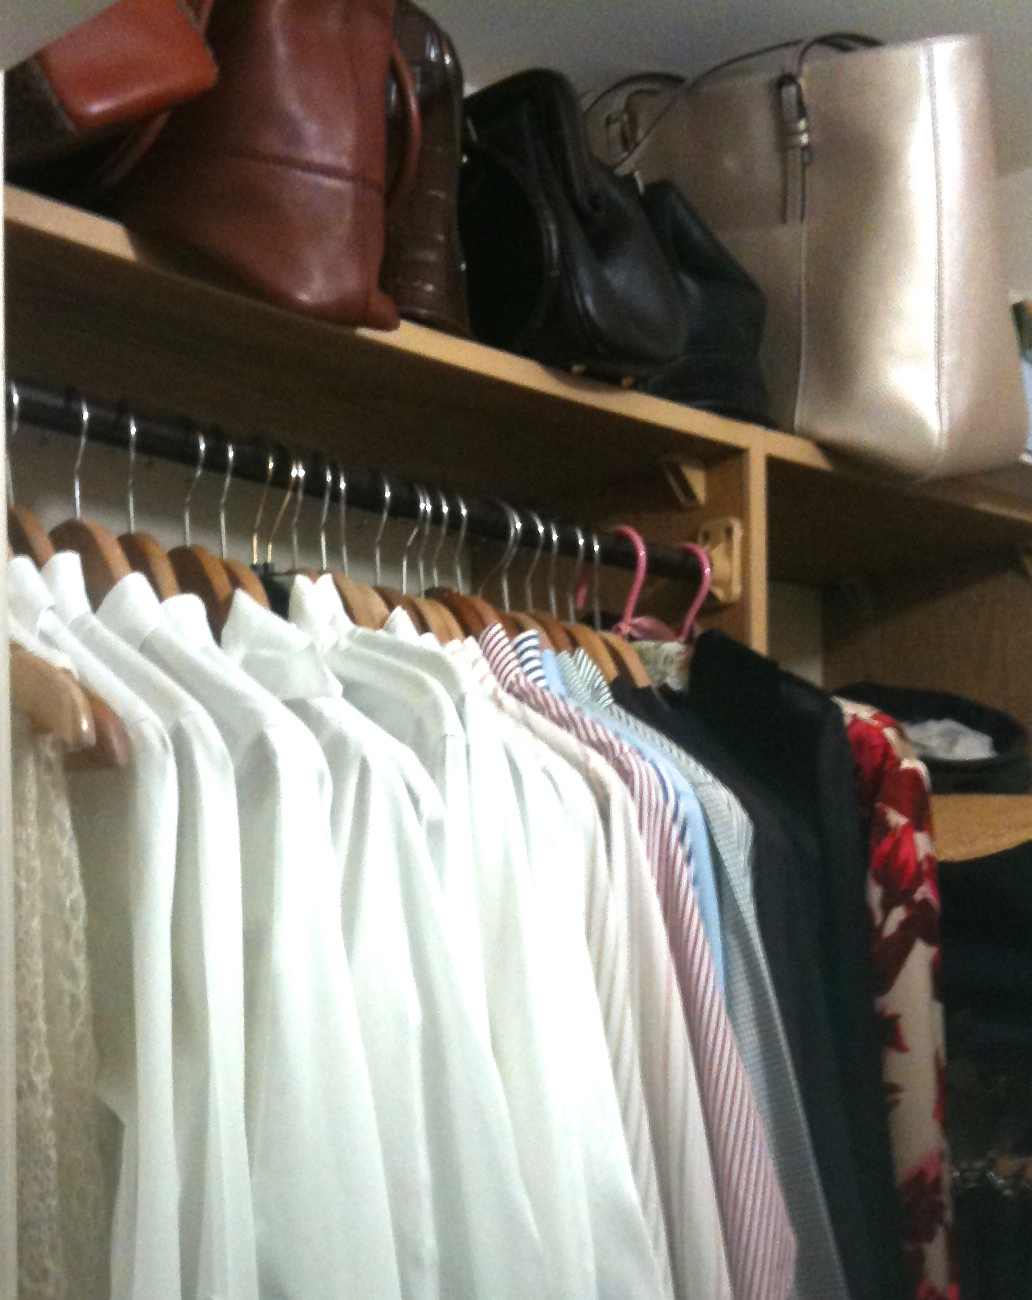 Resetting the Wardrobe - an assessment of the current seasonal clothes in the closet